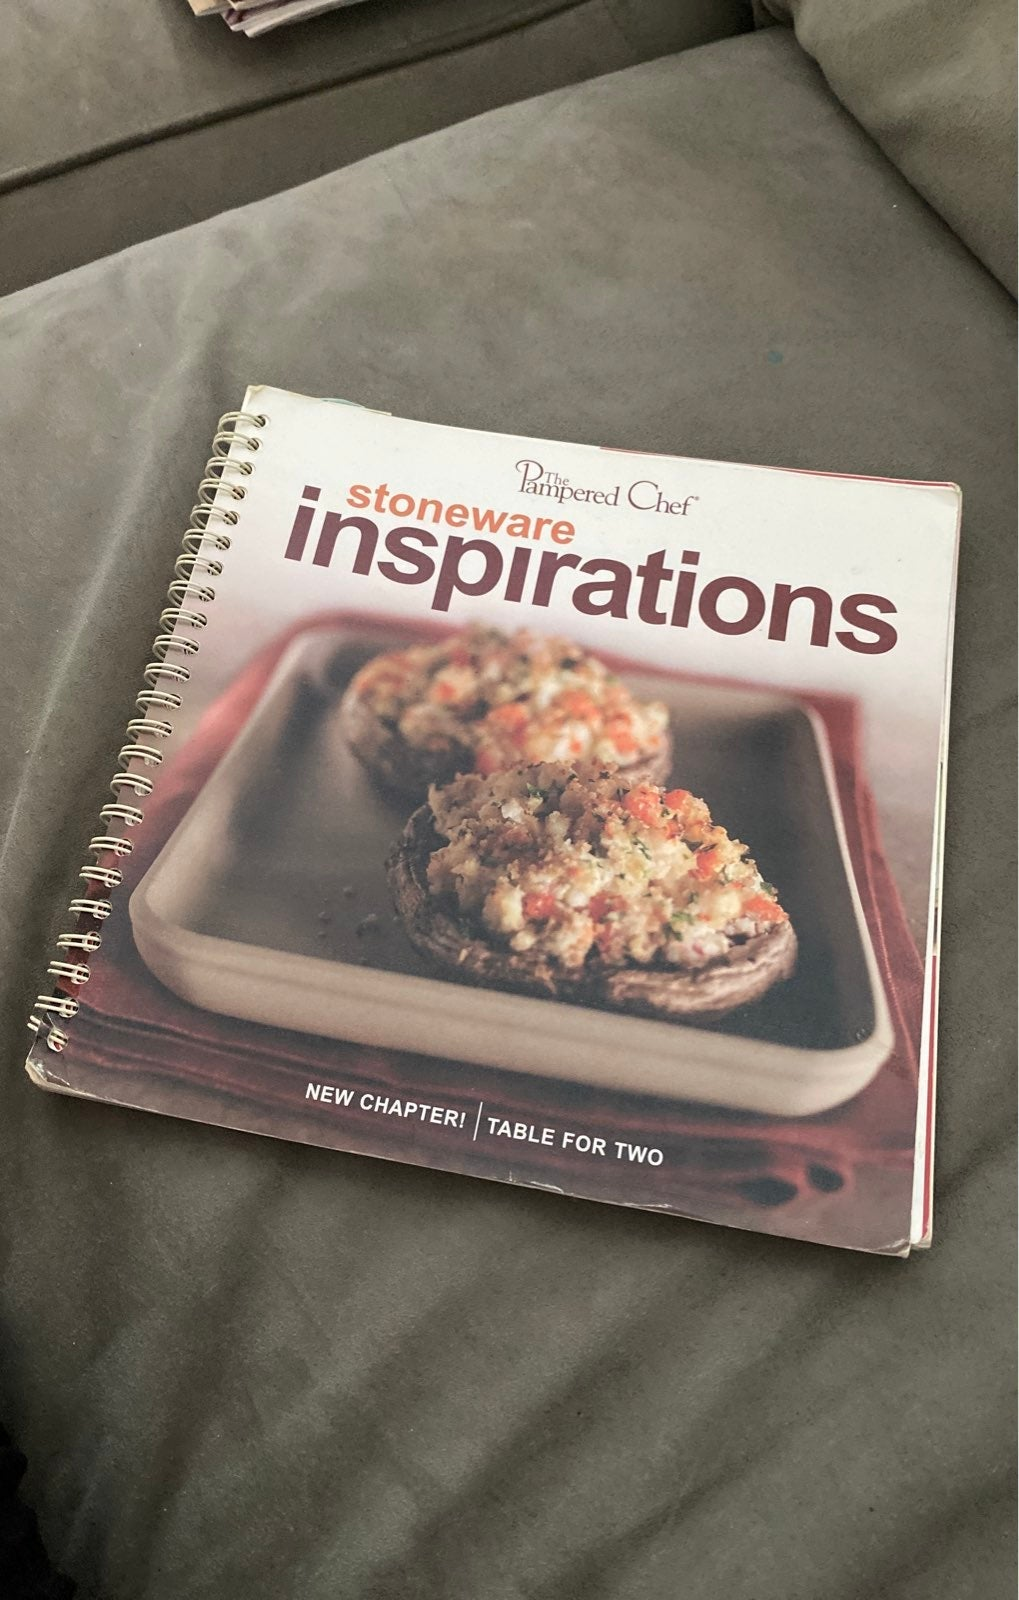 Pampered Chef Cookbook Stoneware inspira